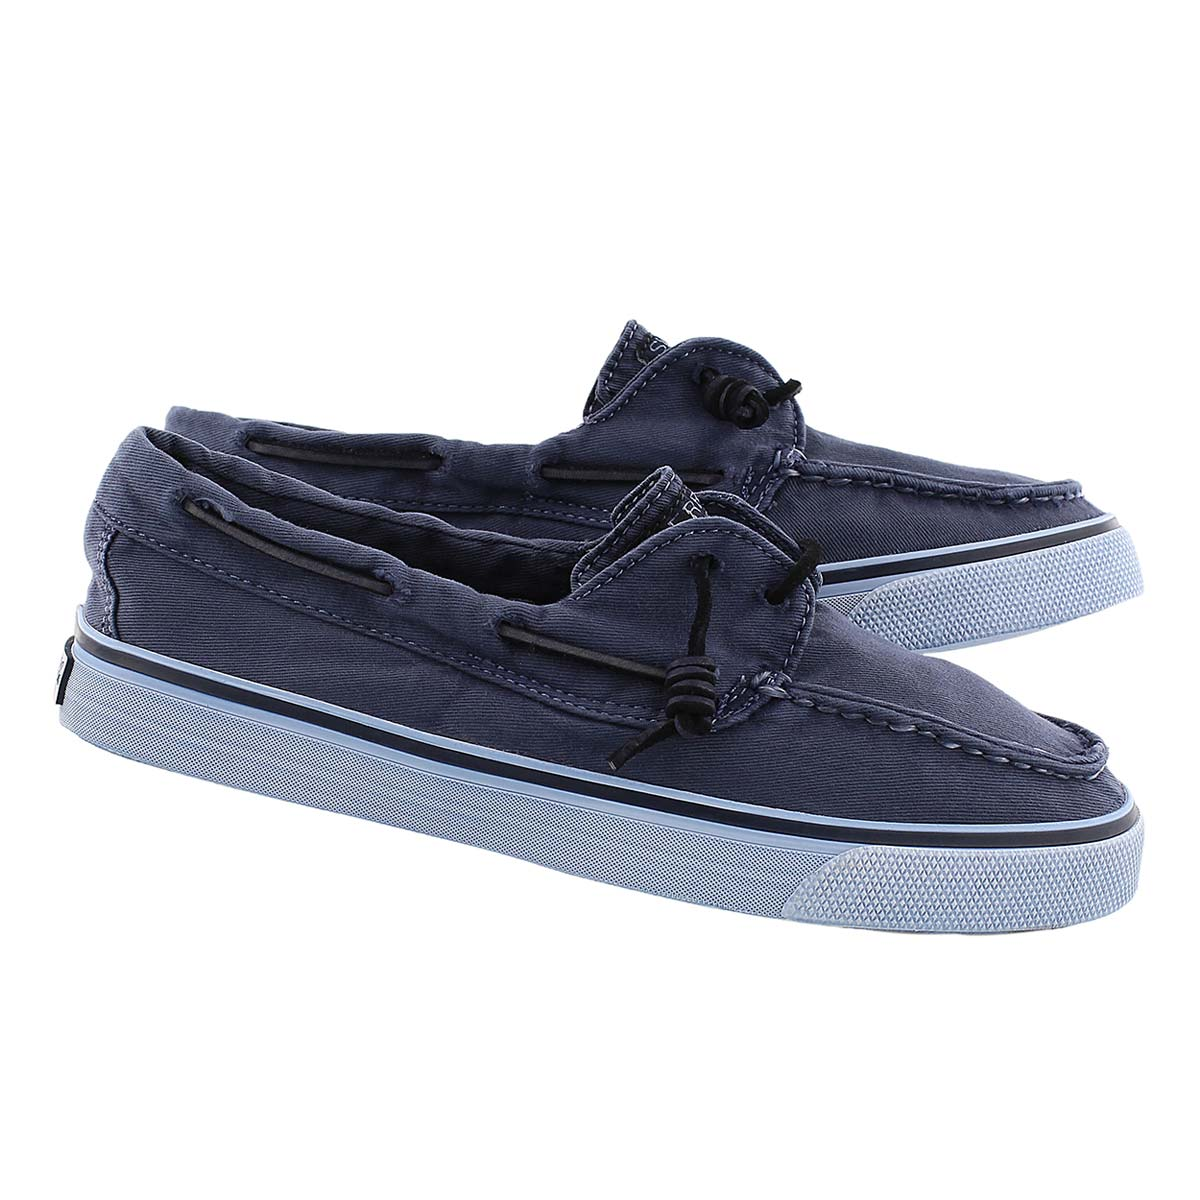 Lds Bahama Washed navy boat shoe